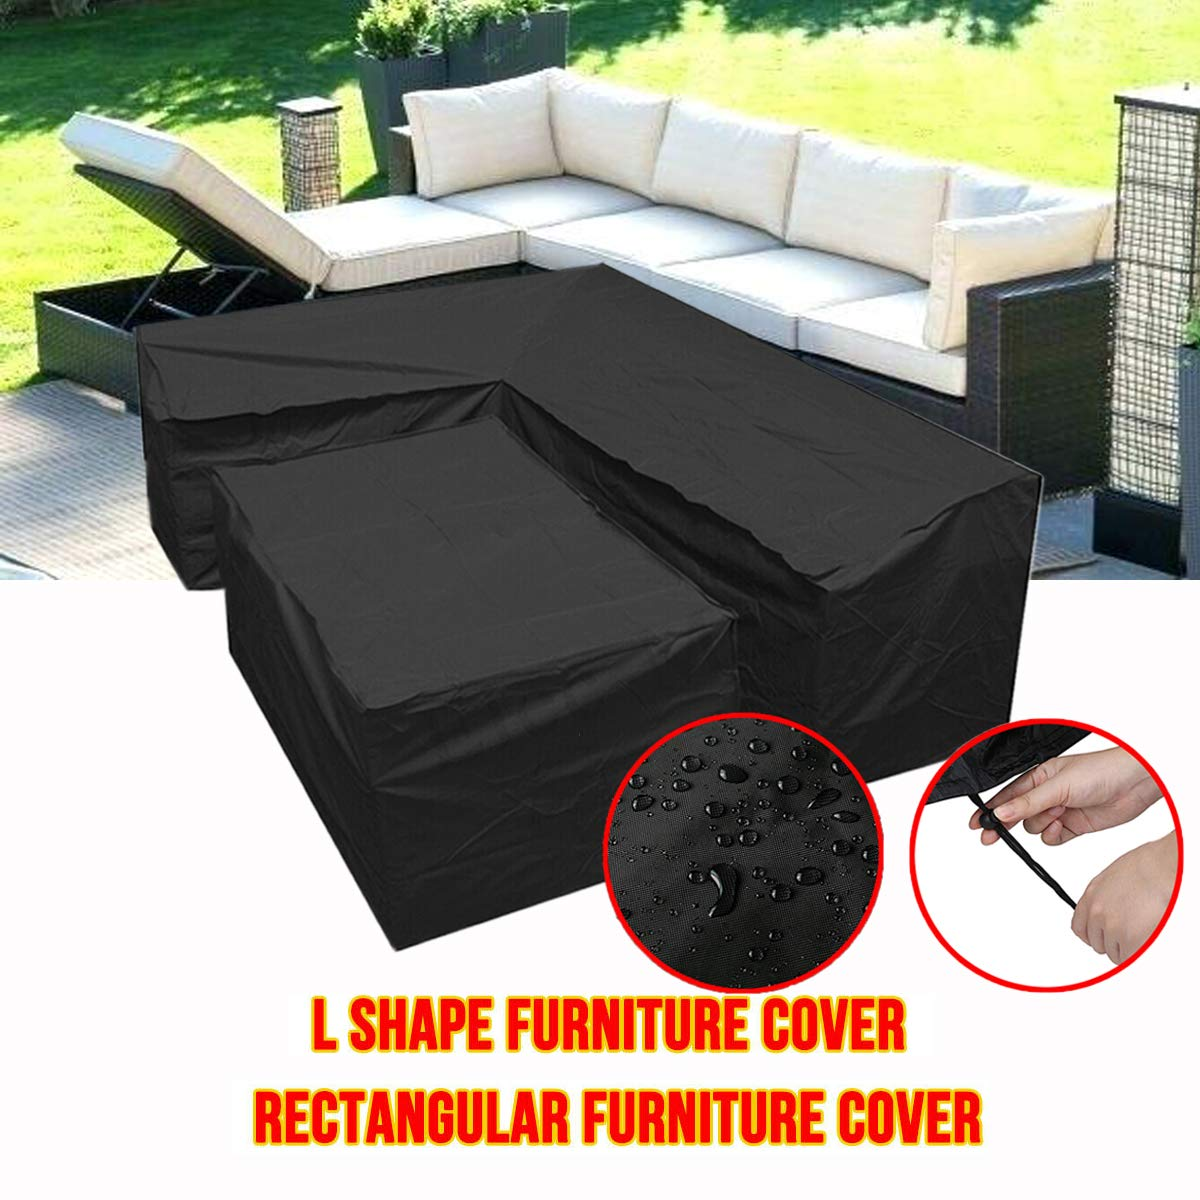 Silvotek L Shaped Outdoor Sofa Cover-l Shaped Patio Couch Covers with Durable Hem Cord,210D l Shaped Outdoor Couch coverl Shaped Outdoor sectional Sofa Cover by Silvotek